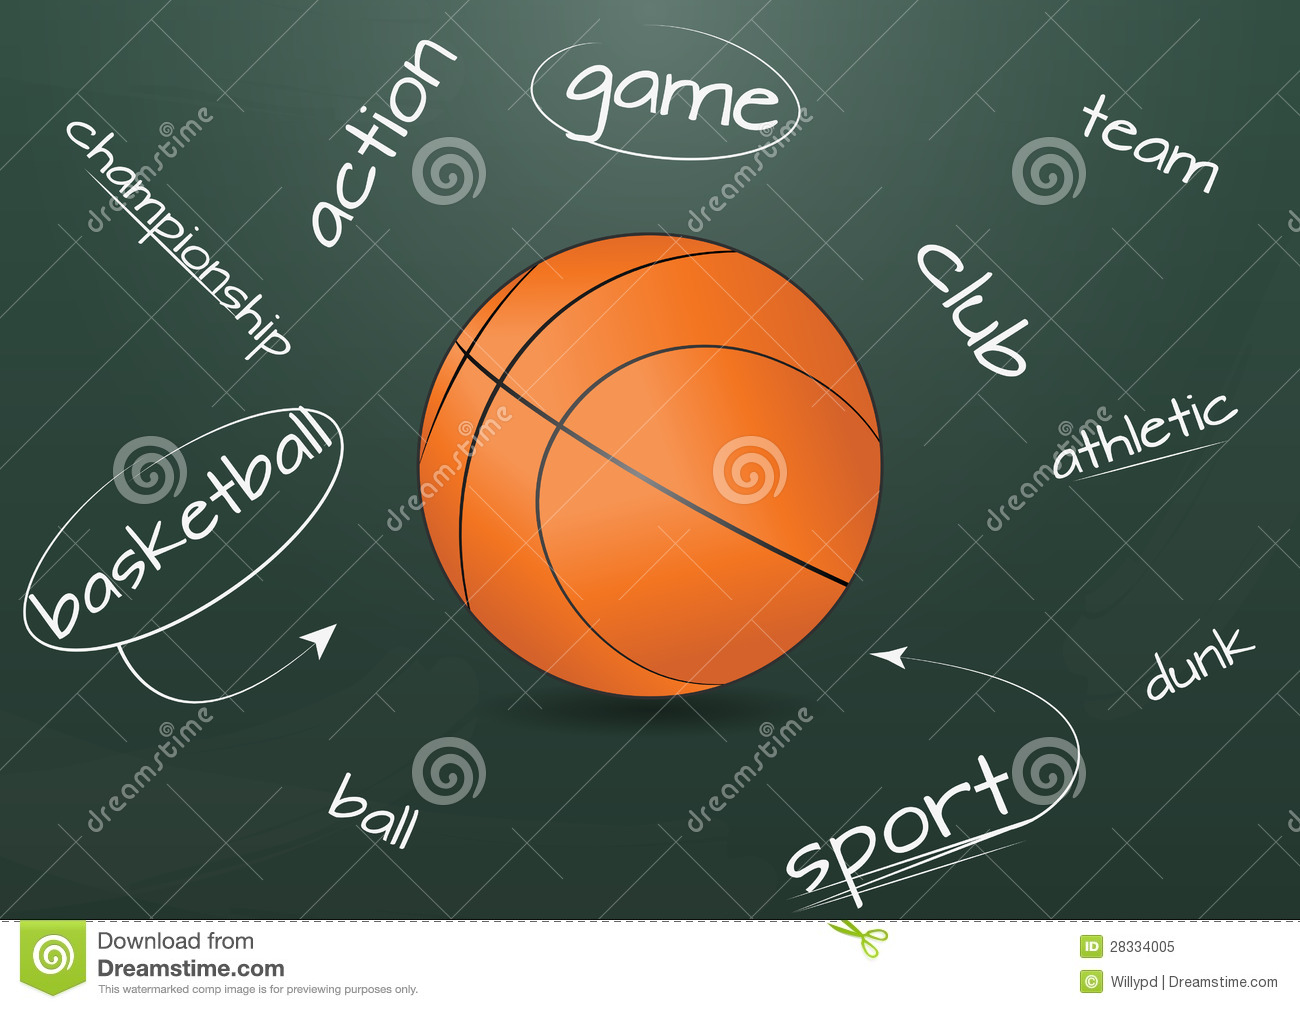 Basketball Chalkboard Royalty Free Stock Photo - Image: 28334005